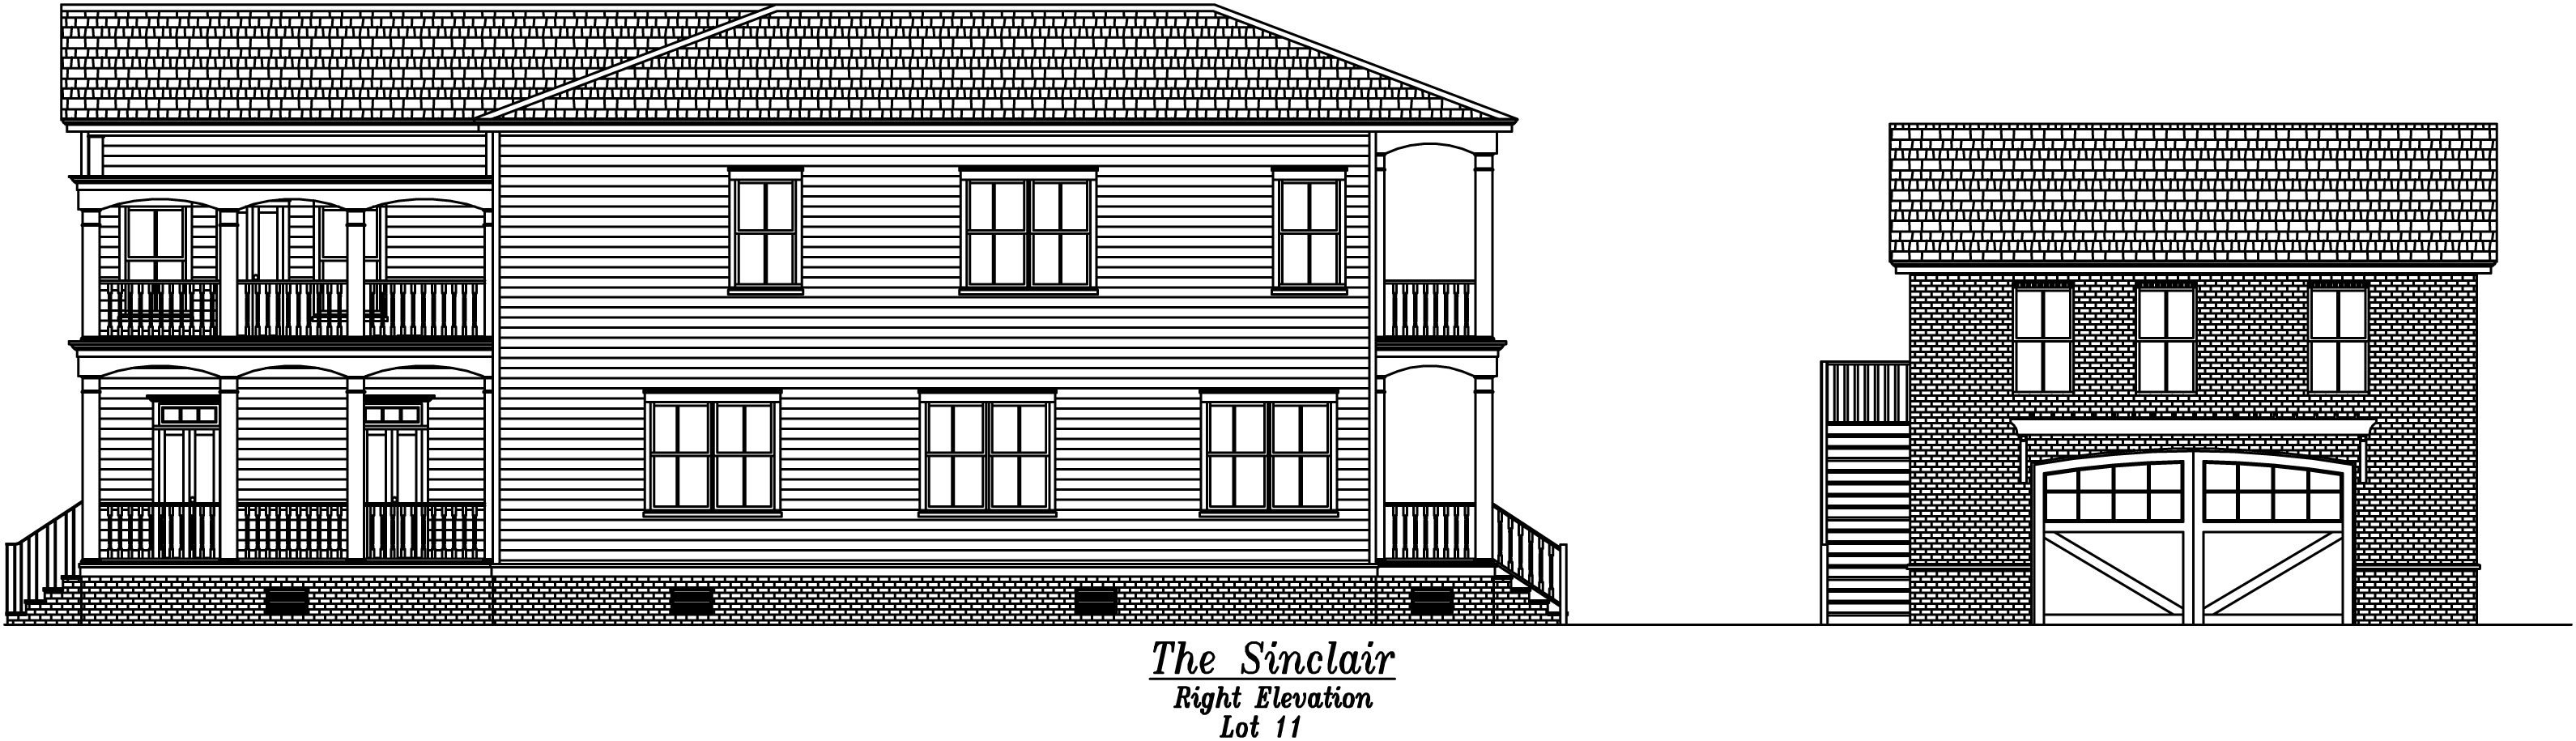 Sinclair Right Elevation